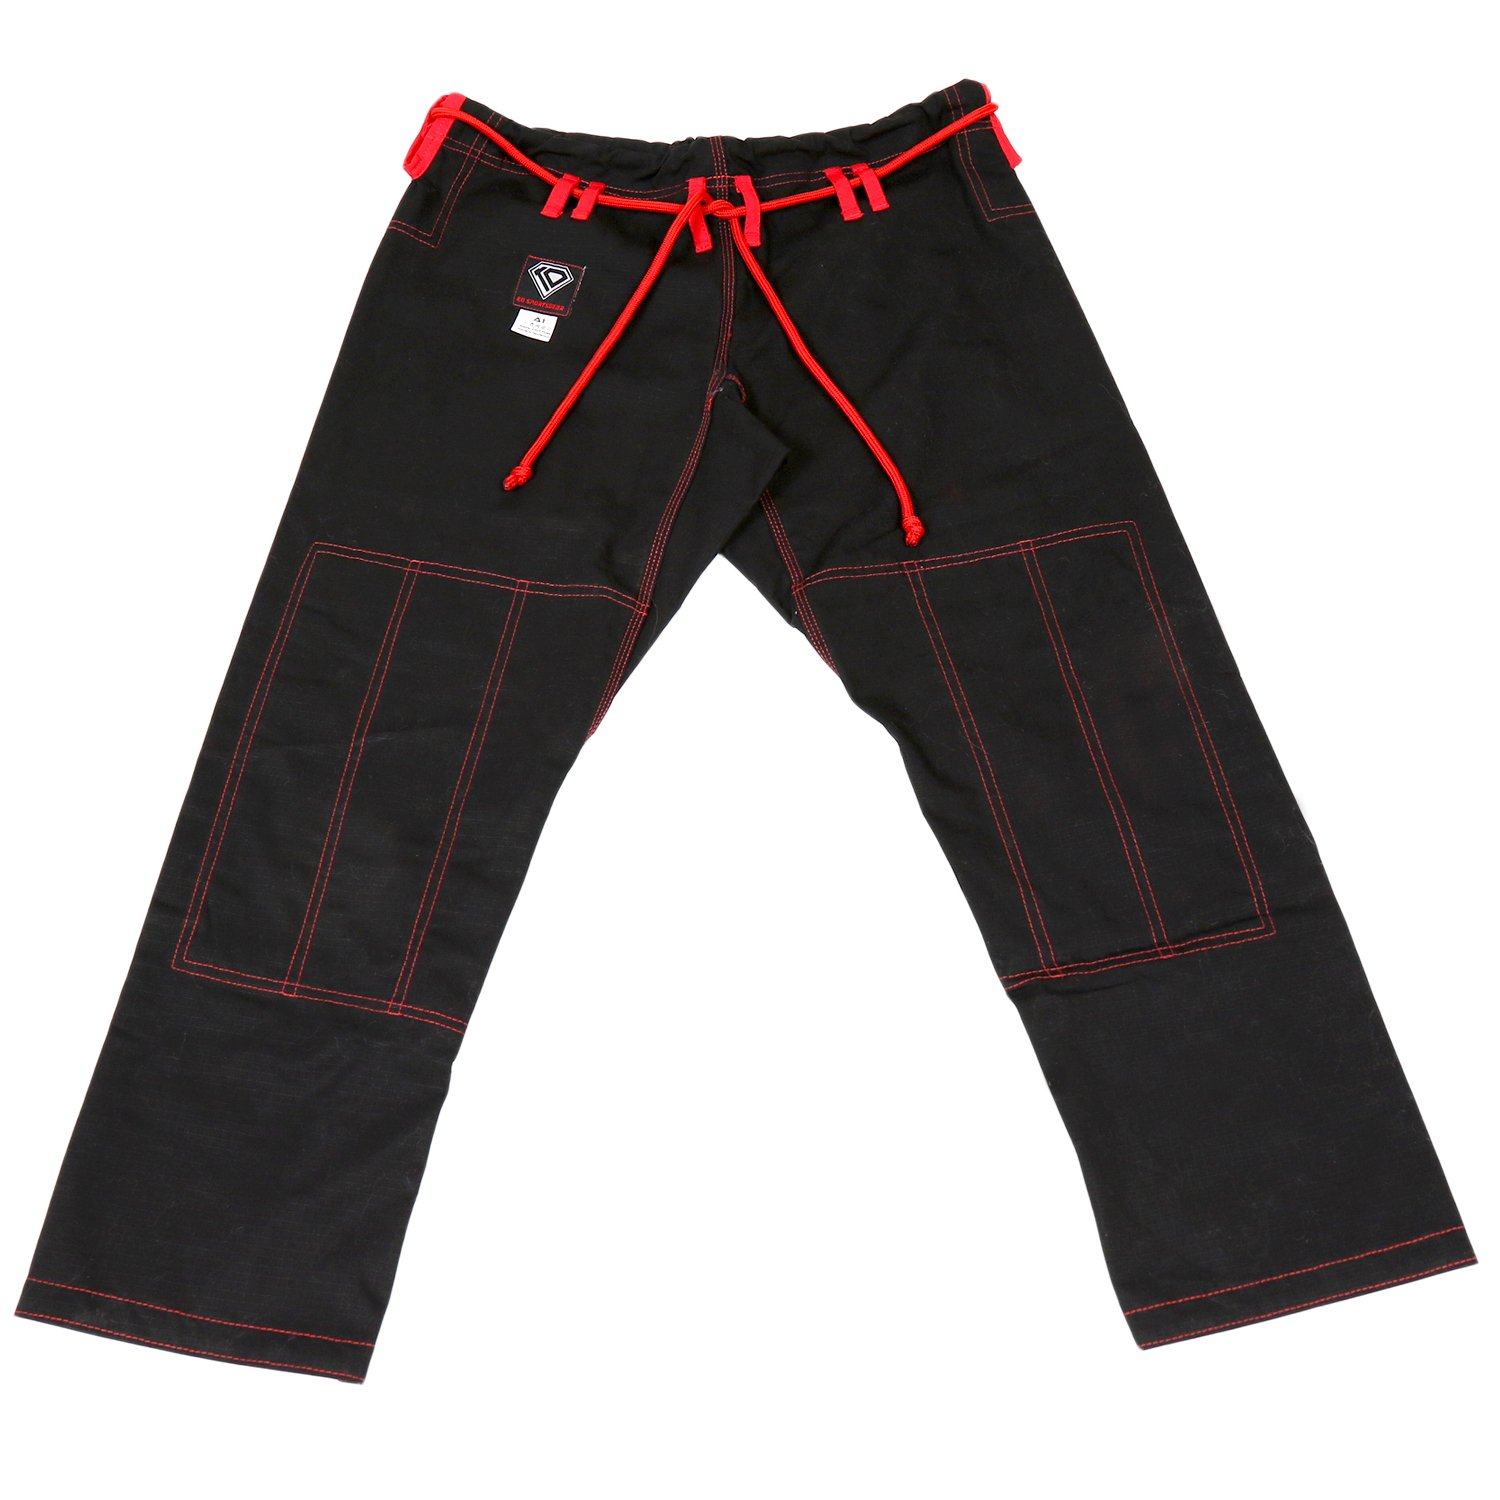 KO Sports Gear's Black Gi Pants - Rip Stop - For Jiu Jitsu (A3) by KO Sports Gear